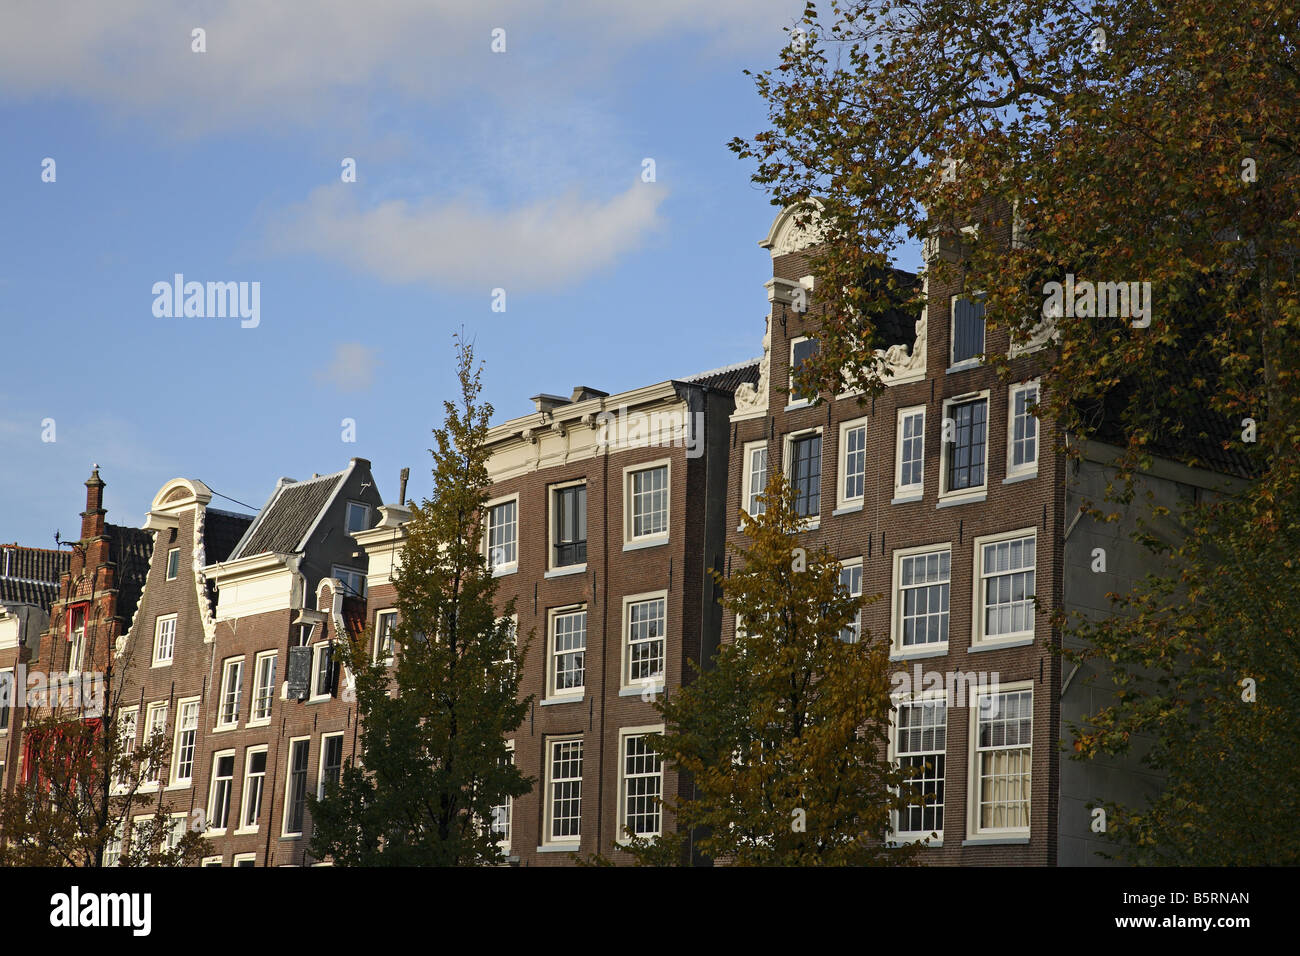 Architecture and houses besides the Prinsengracht canal in Amsterdam - Stock Image